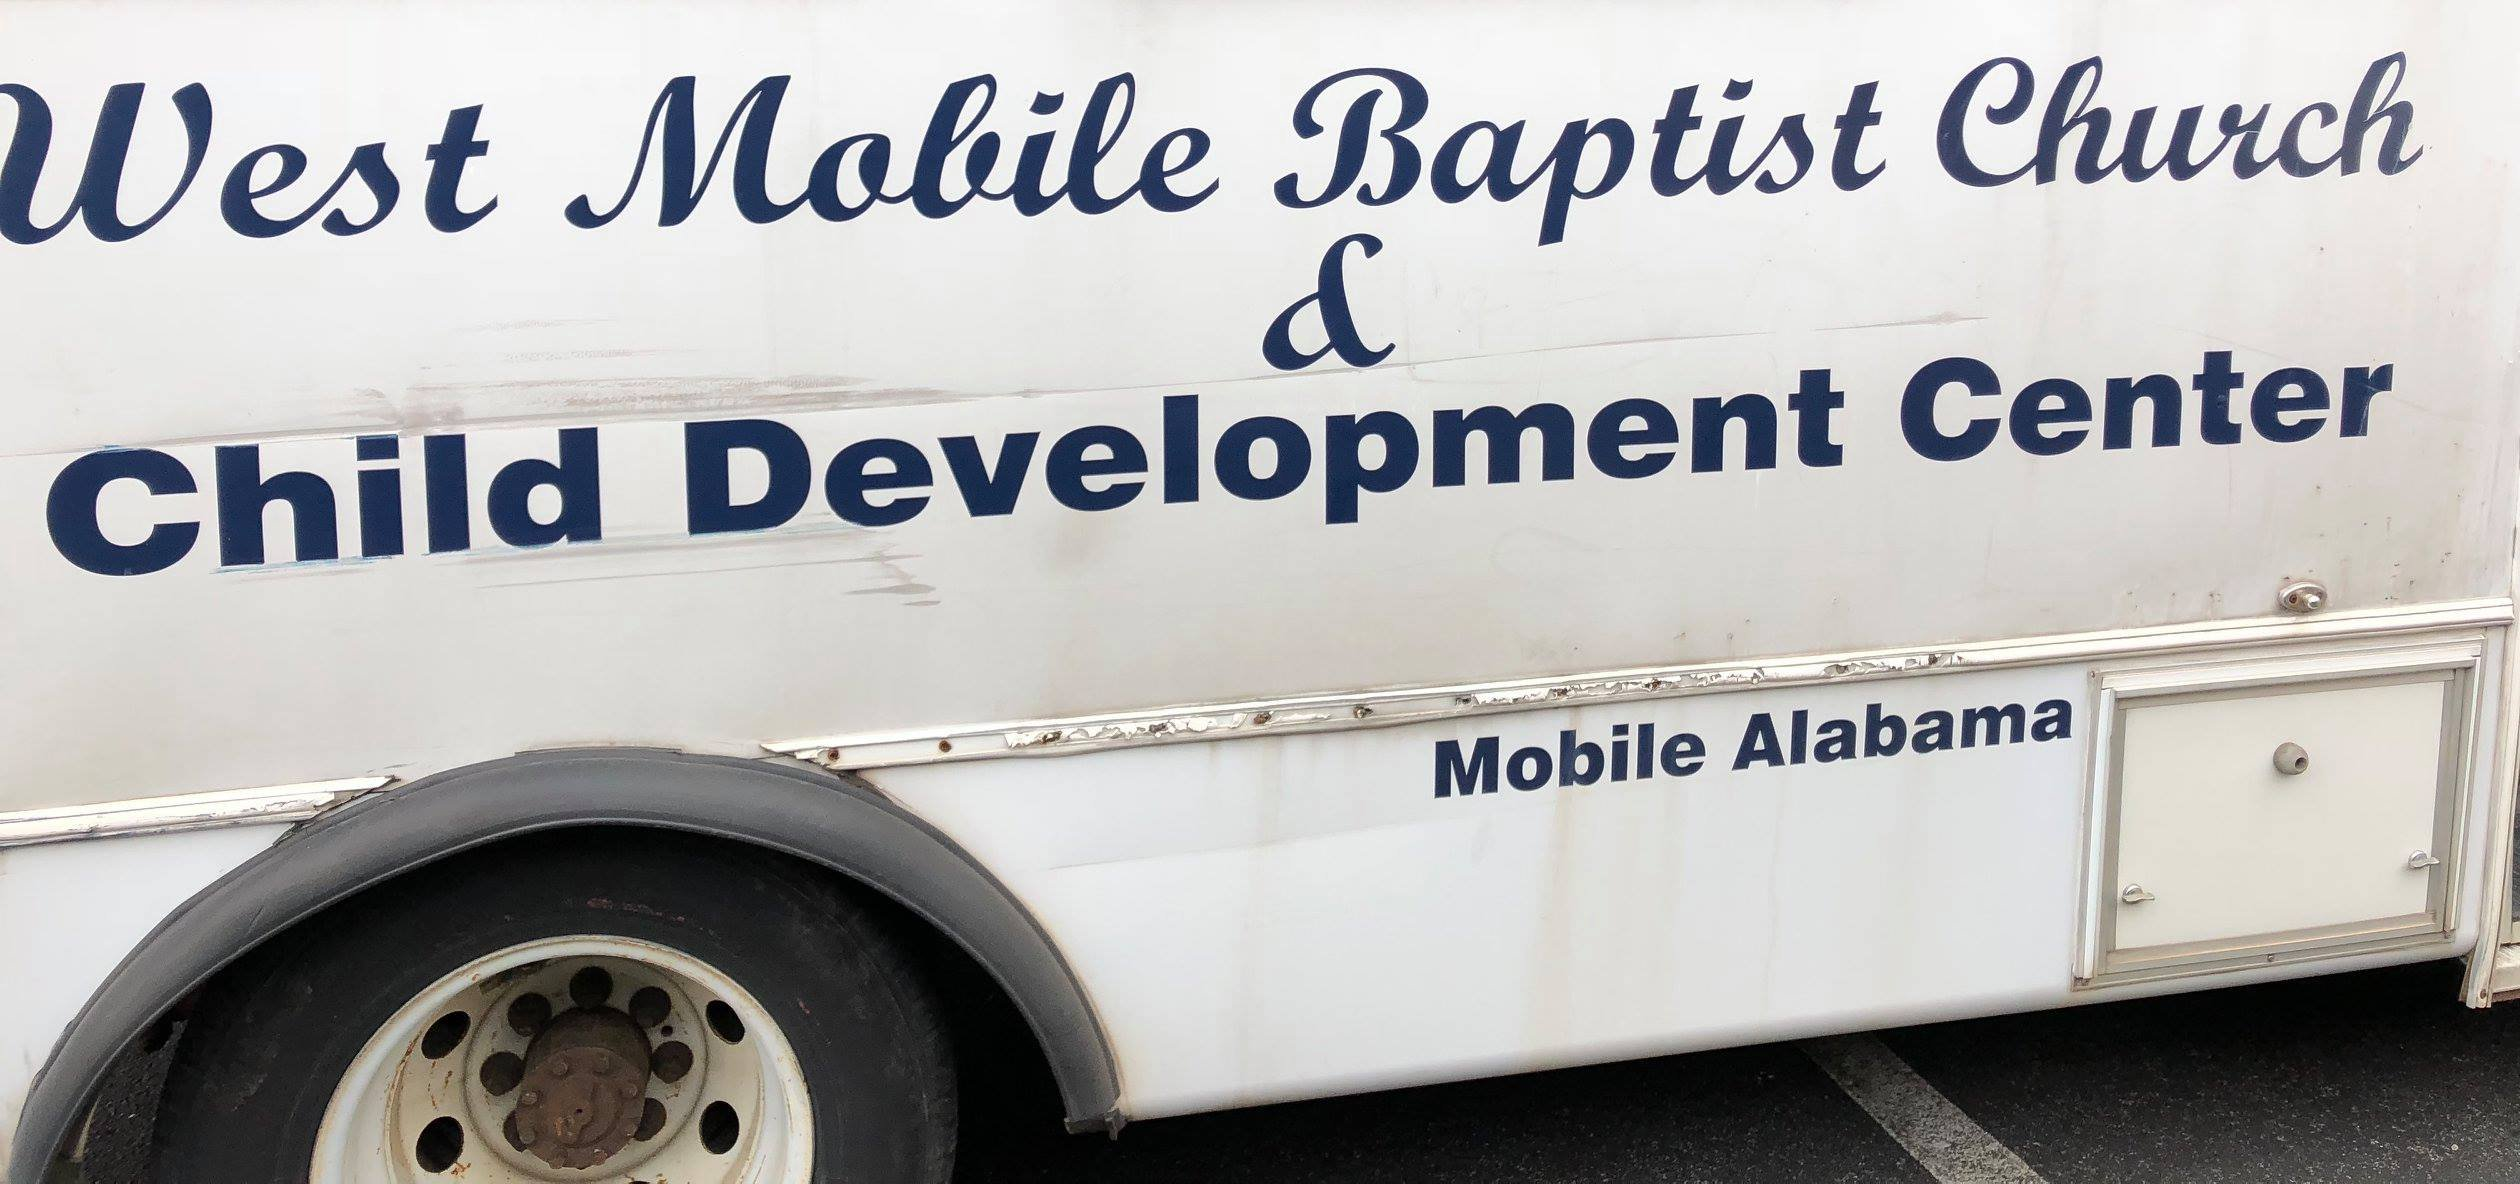 This is the logo that will be on the side of the trailer that was stolen from West Mobile Baptist Church. (Click to enlarge)